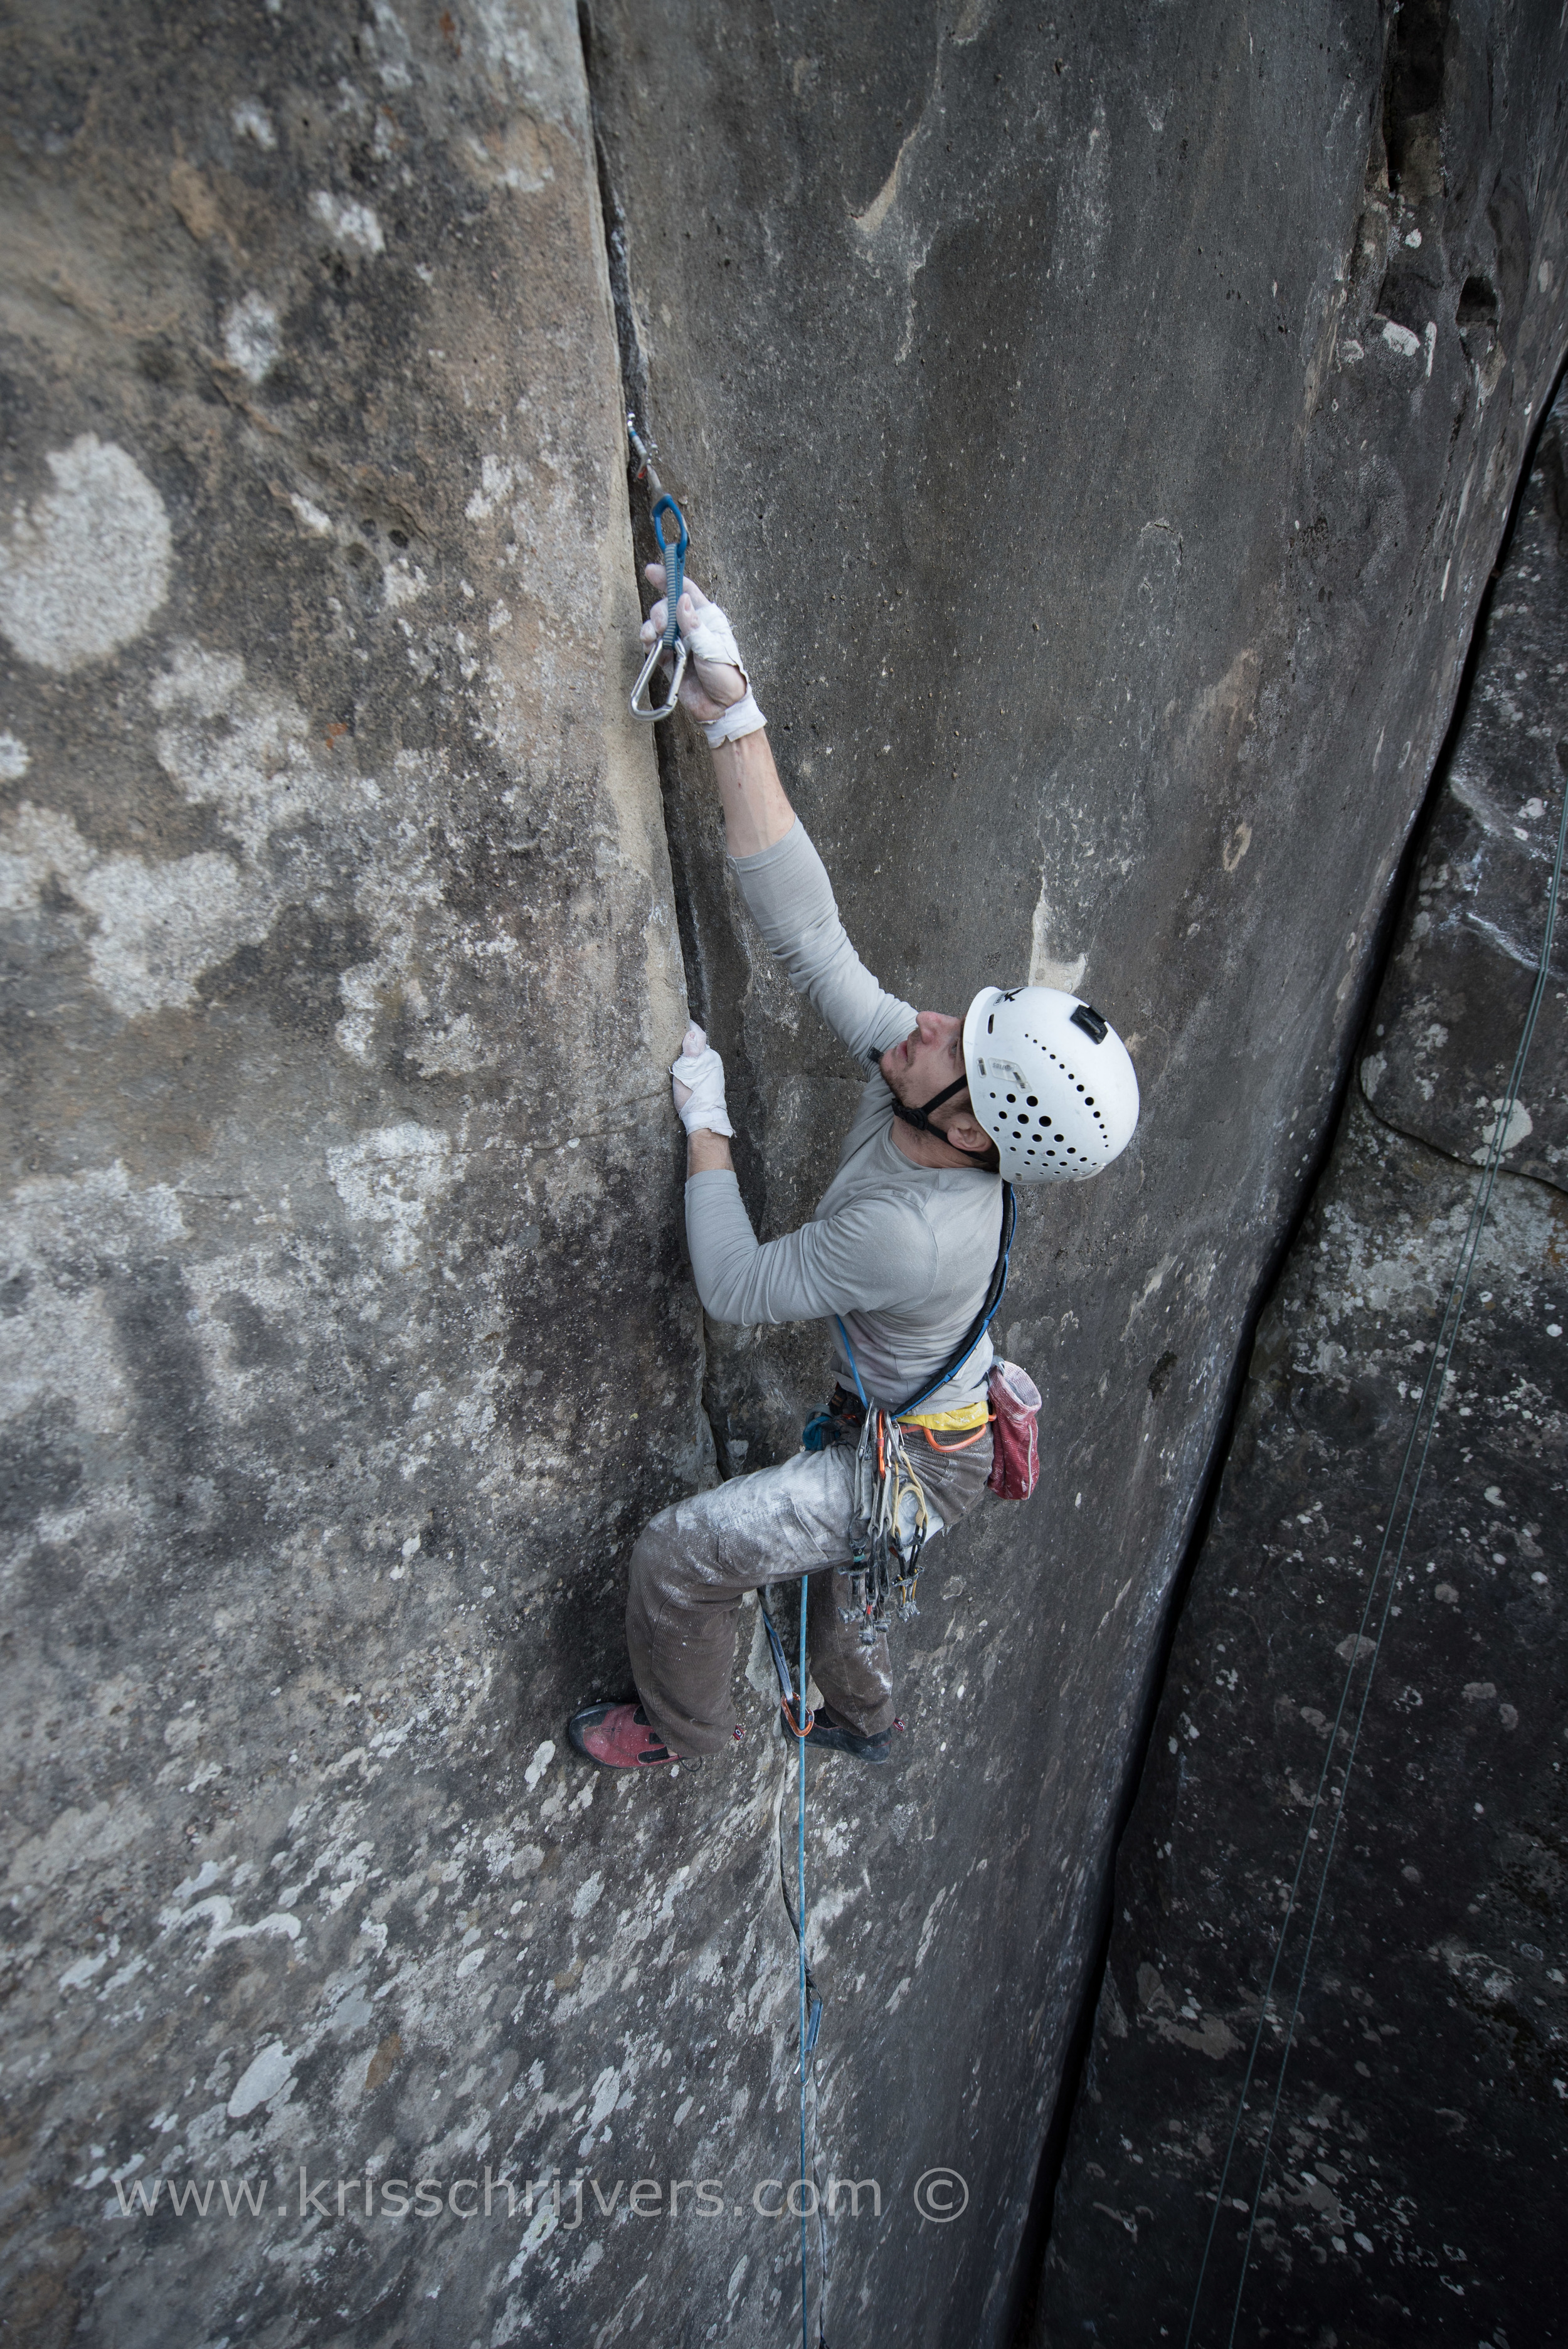 Pure finger 7c (5.12d)